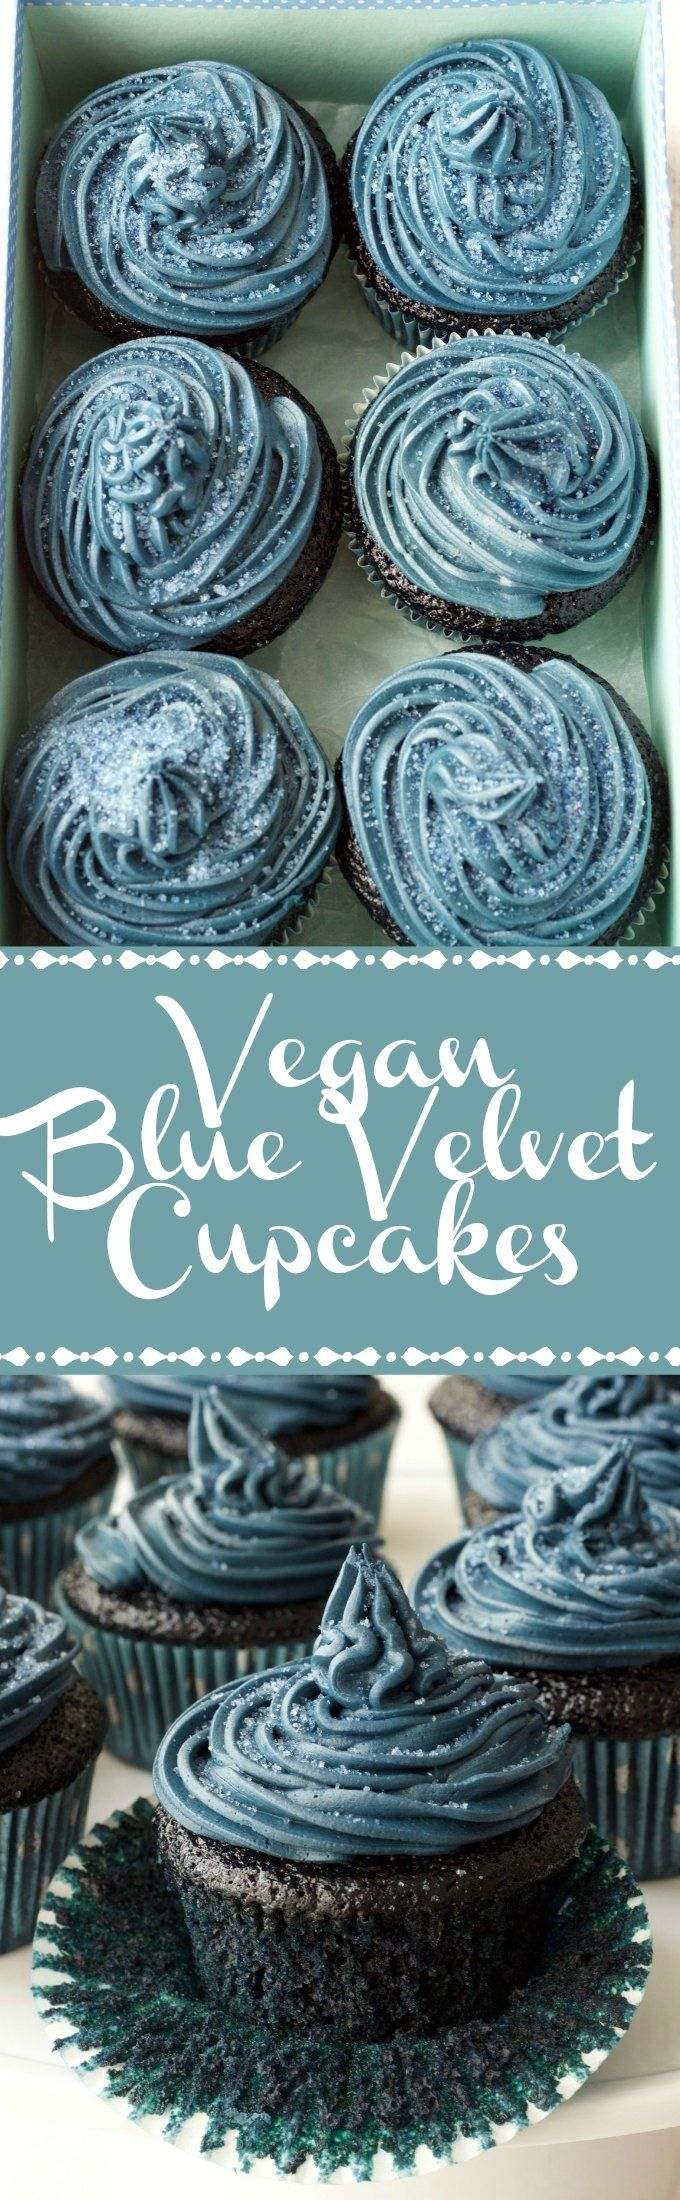 Vegan Blue Velvet Cupcakes with Blue Velvet Frosting - Moist, spongey, and delicious! Vegan | Vegan Cupcakes | Vegan Cakes | Vegan Food